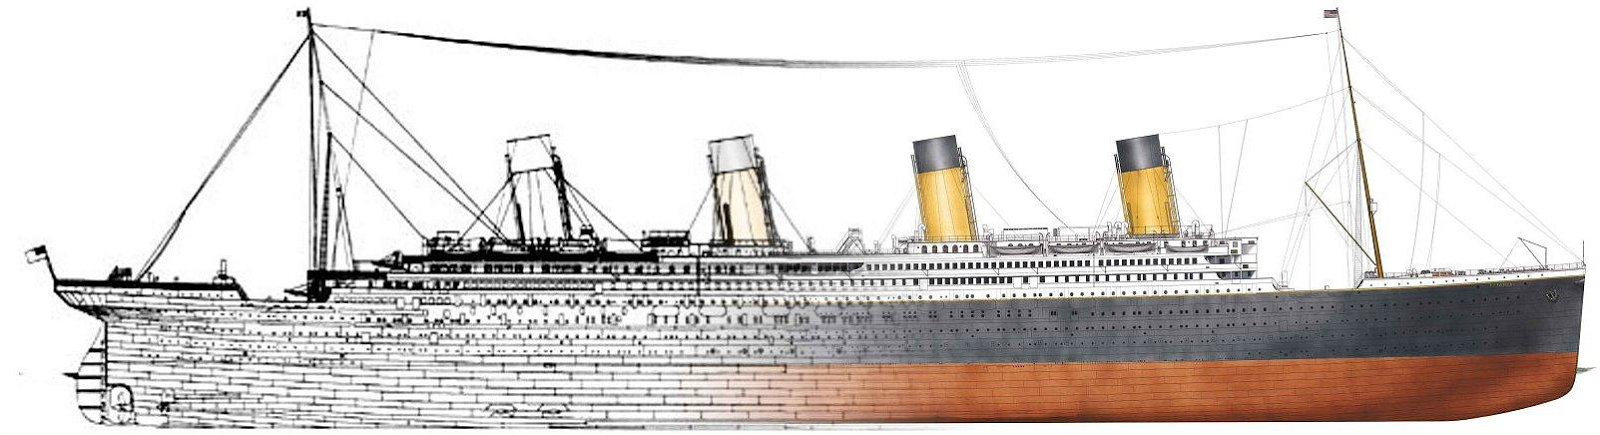 1600x435 Becoming An Engineer How To Draw The Titanic